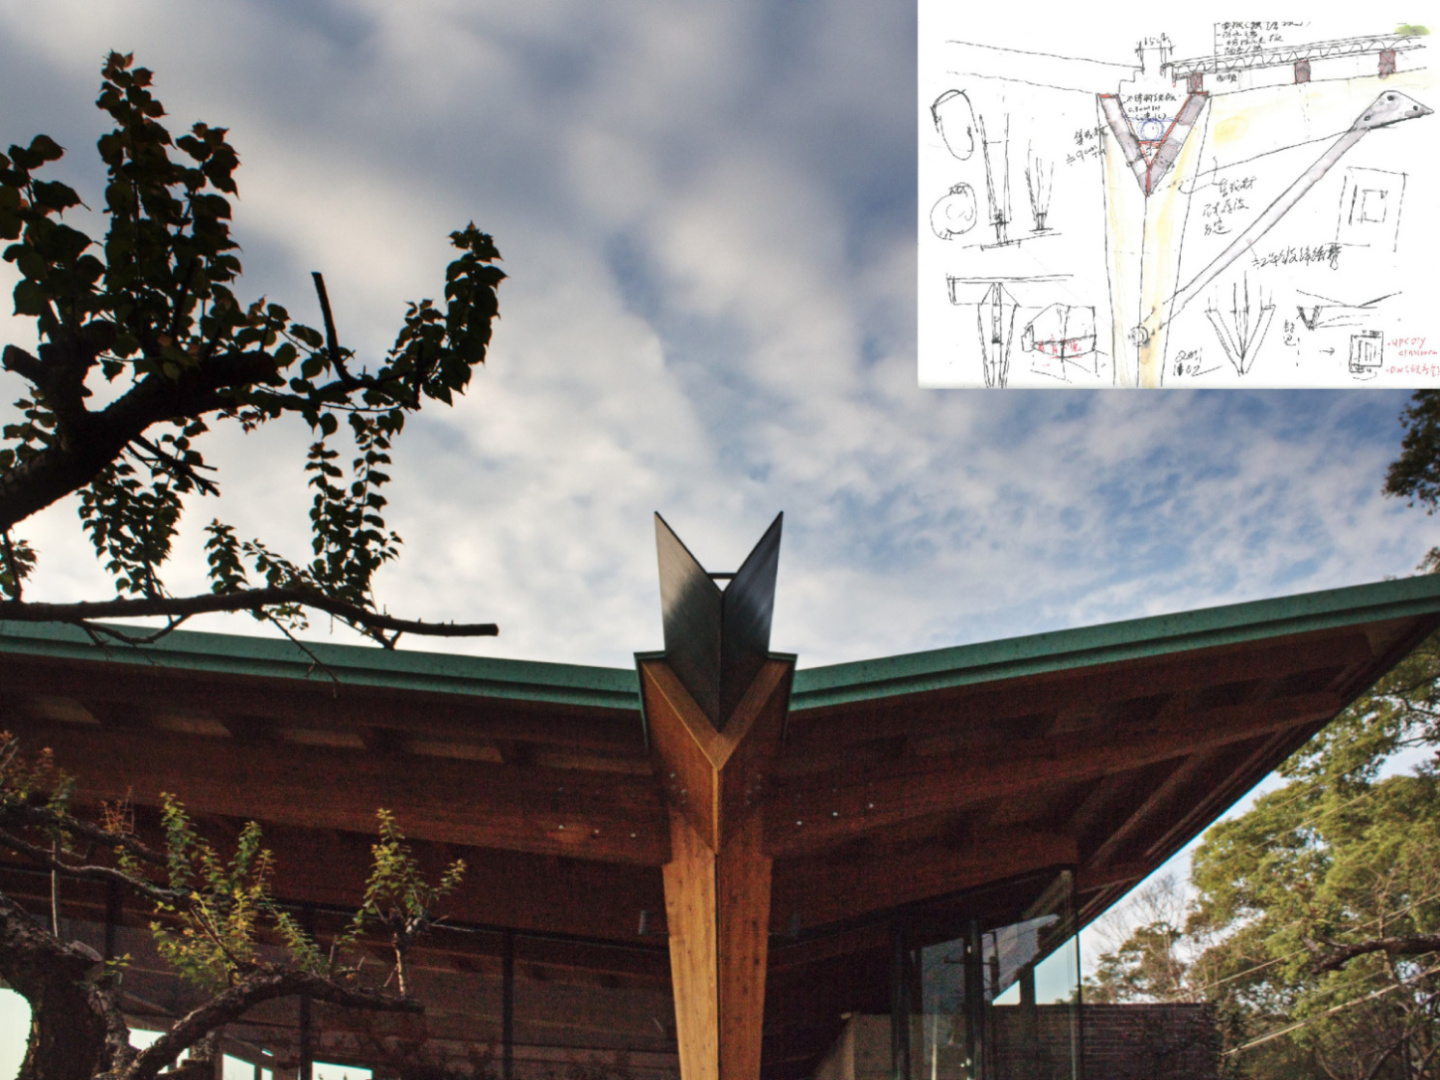 Detail and photo of V-pipe and wood structure }